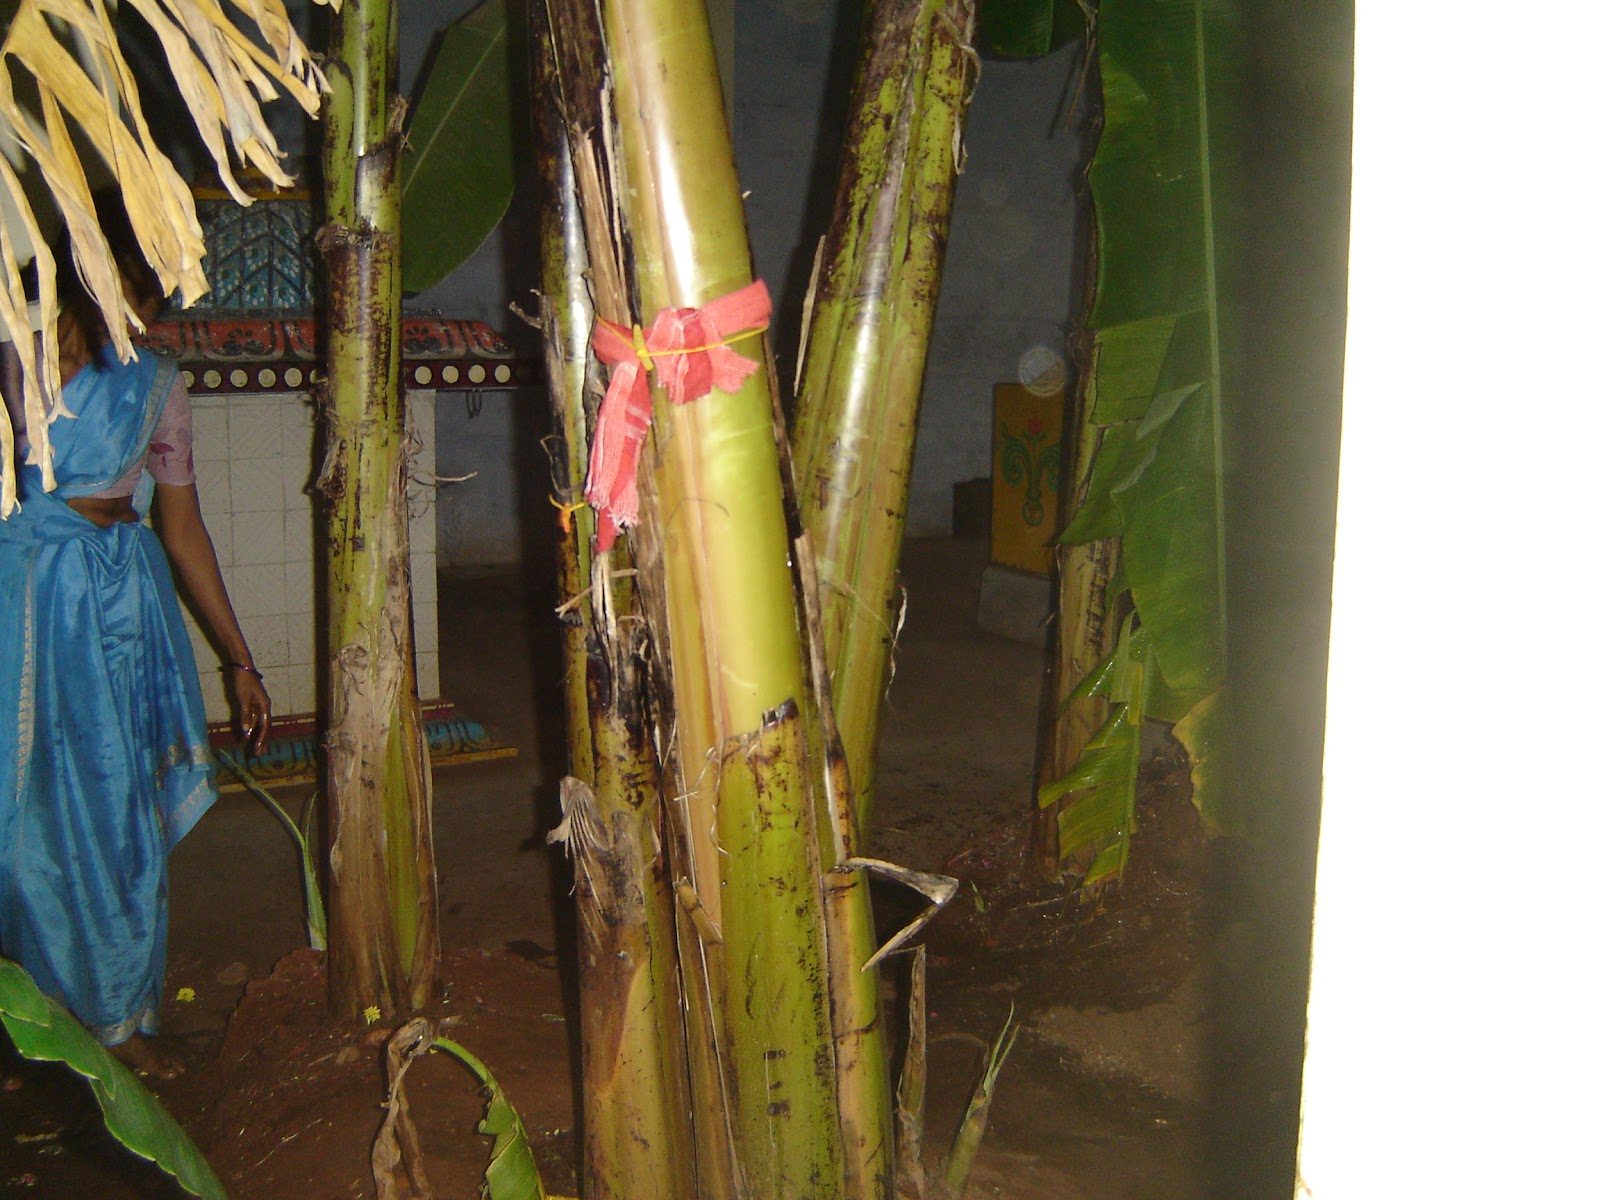 The Plantain trees at the temple